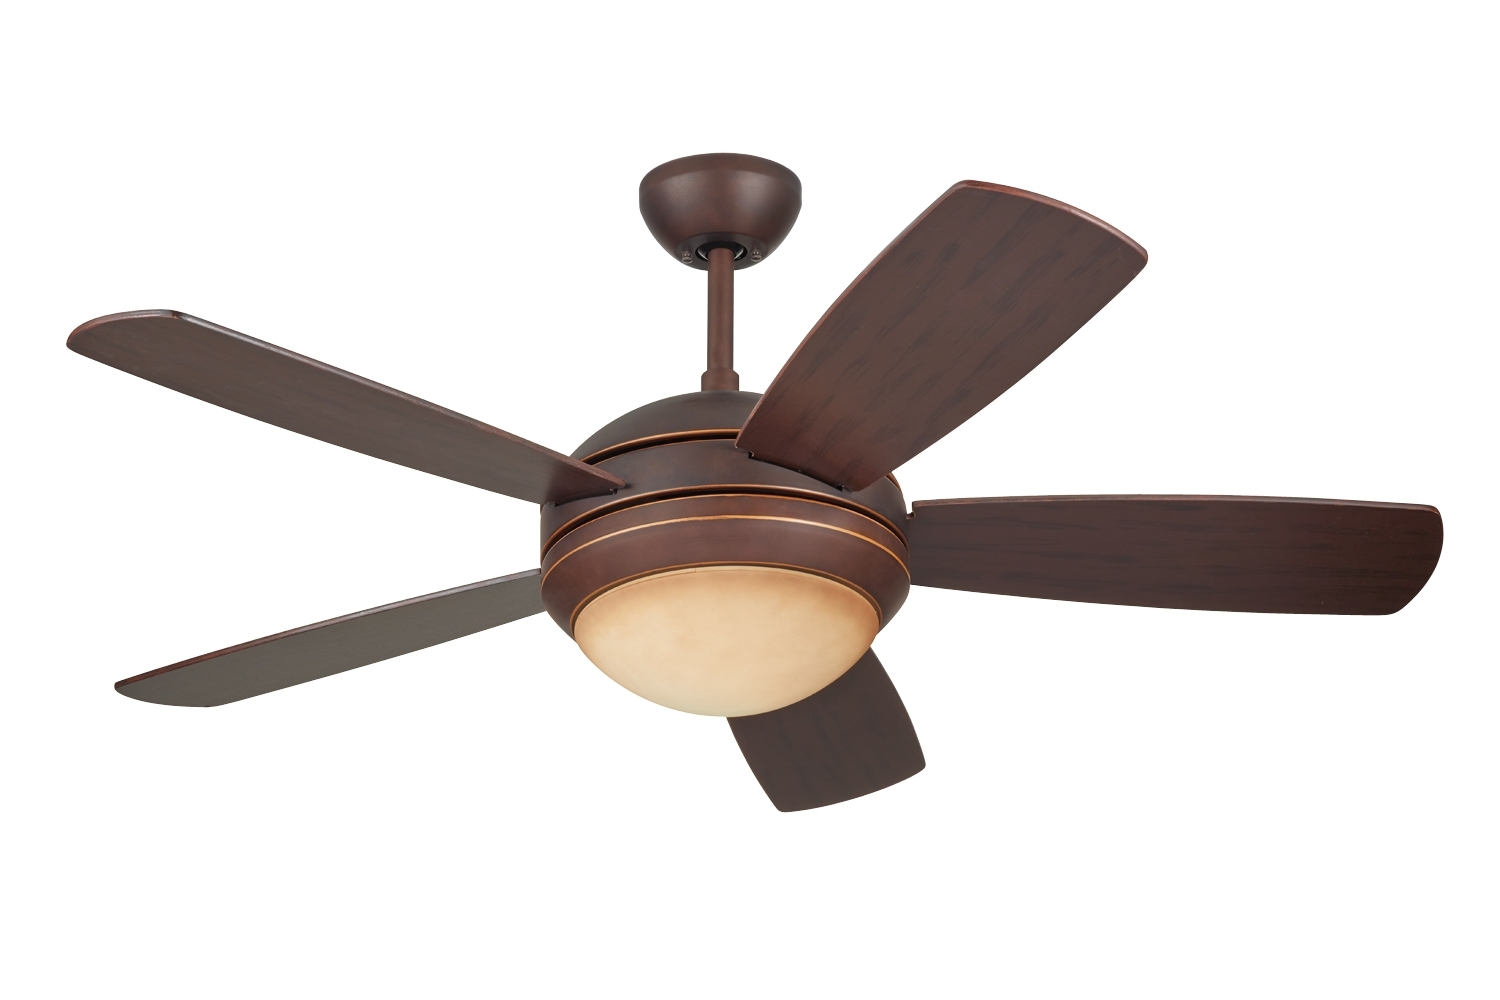 44 inch Ceiling Fan from the Discus II collection by Monte Carlo 5DI44RBD